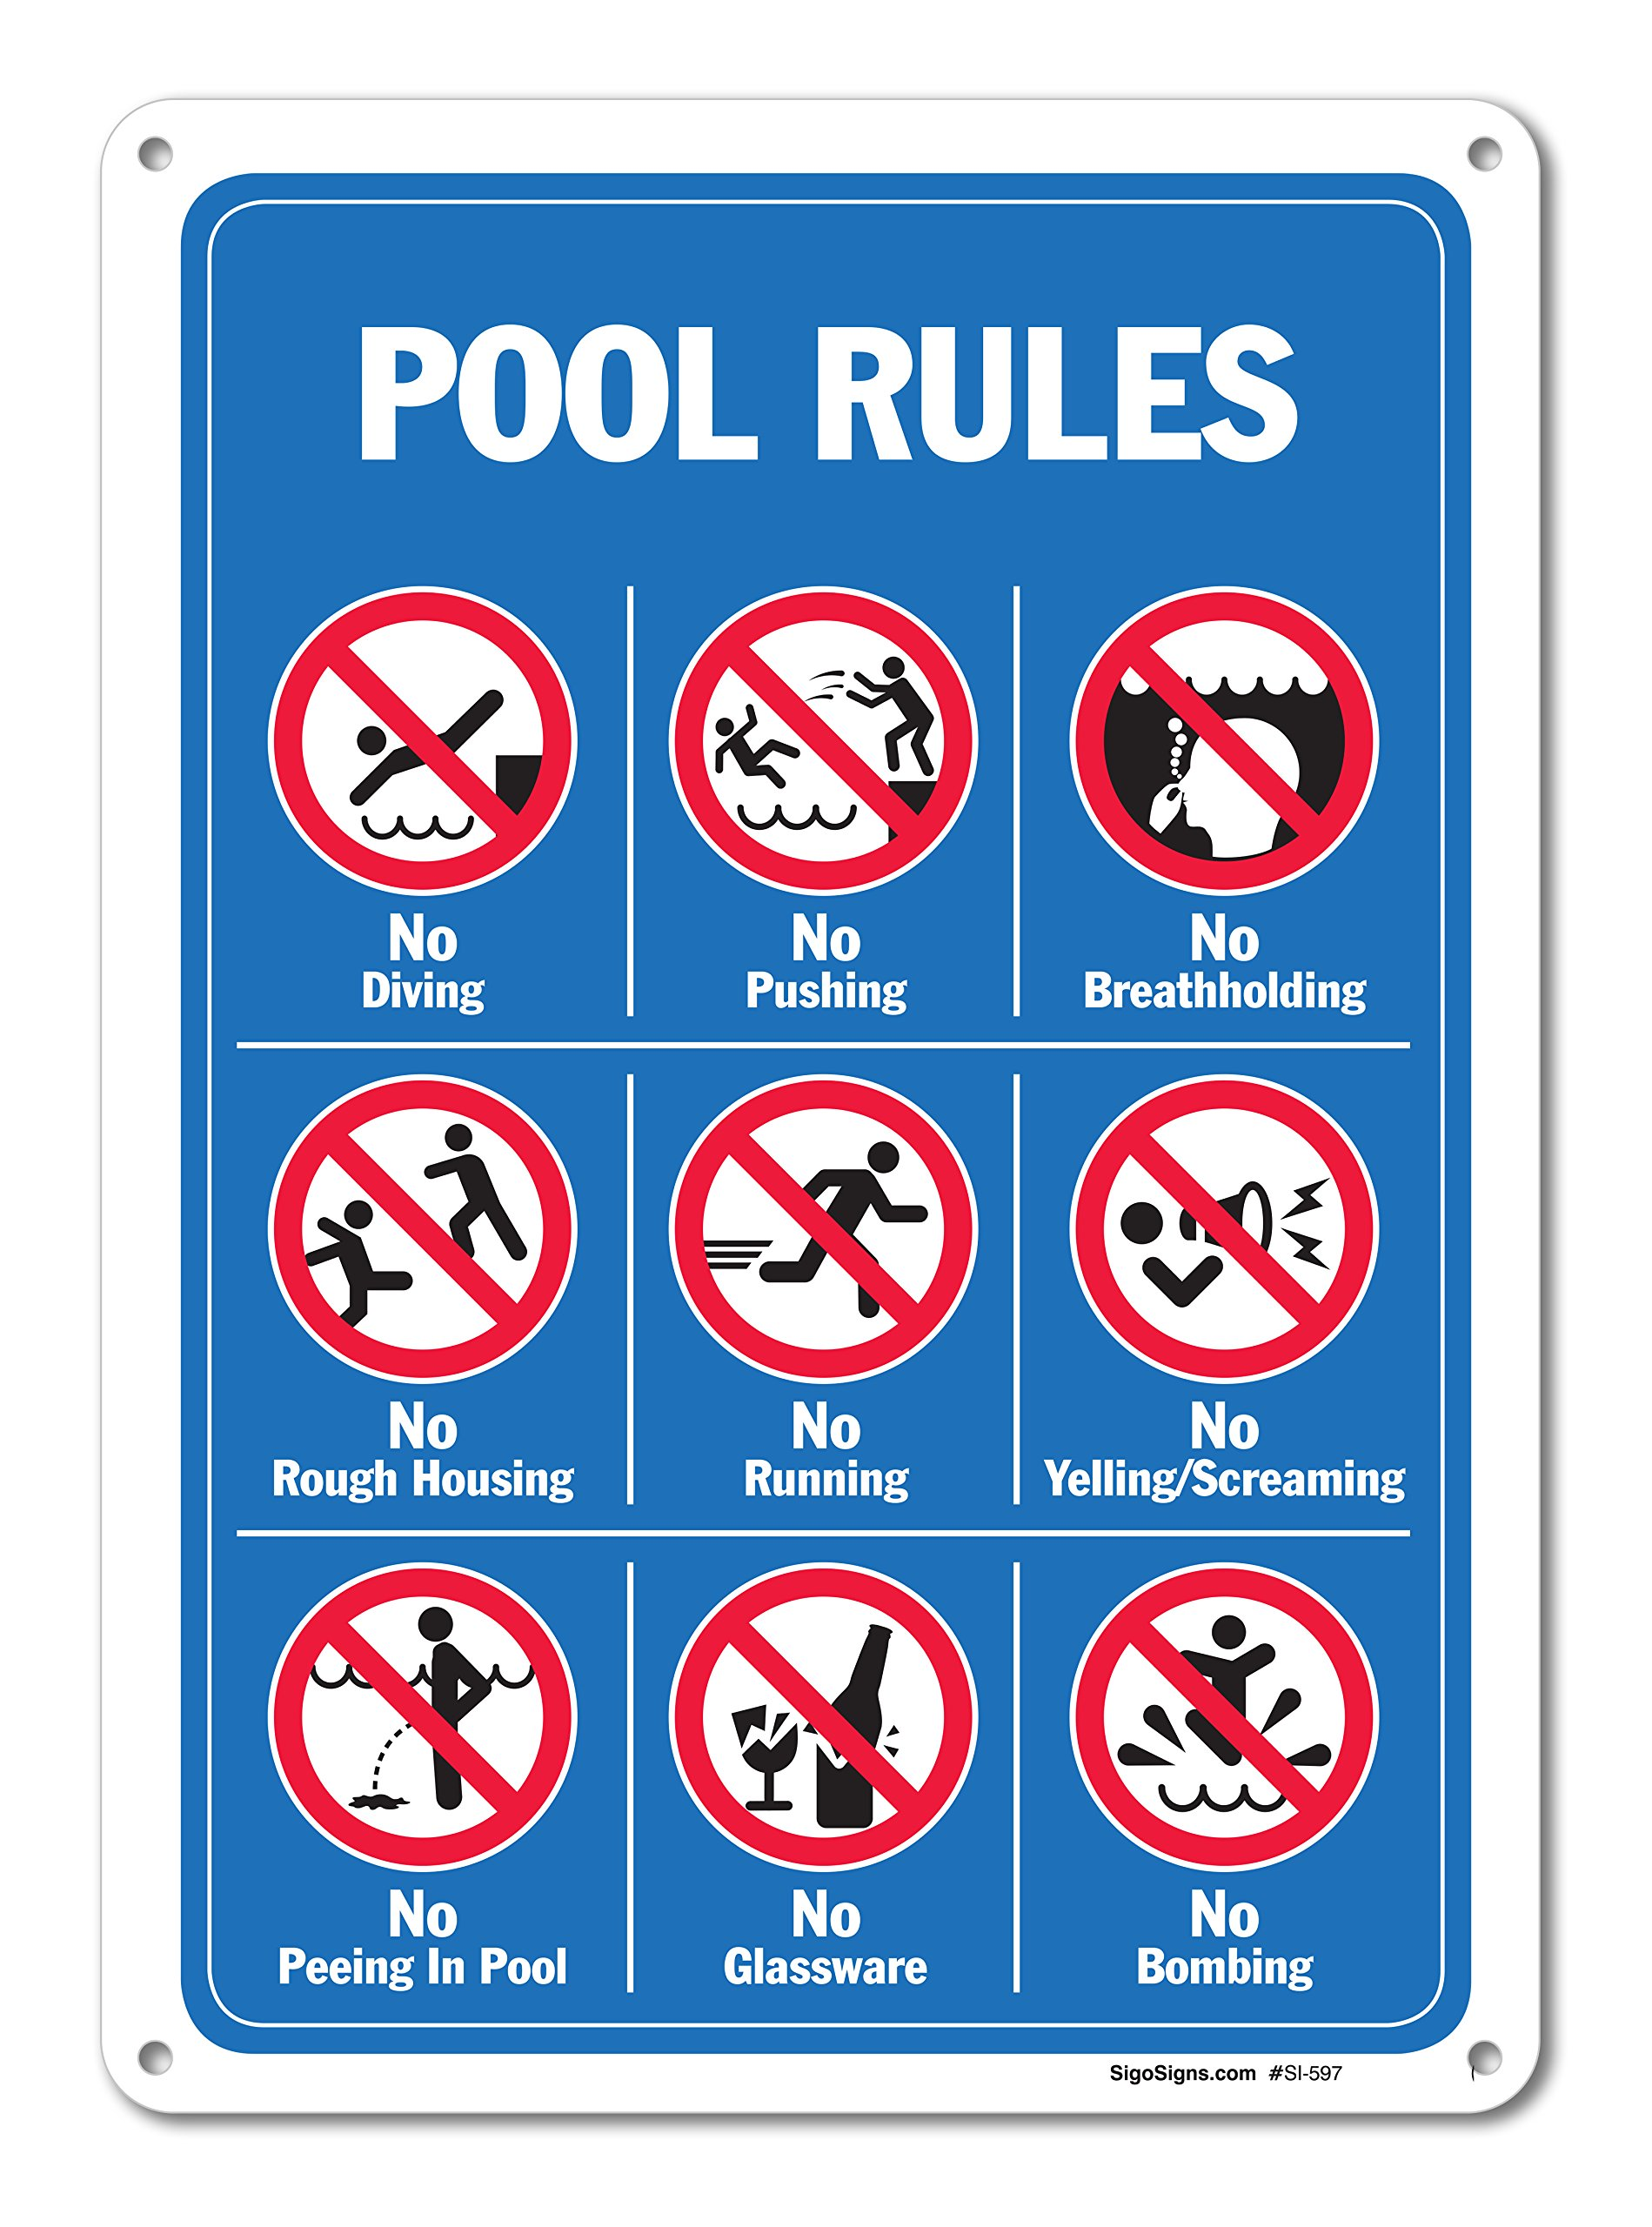 Details about Pool Signs - Pool Rules Sign With Graphics- Large 10 X 14  Aluminum, For Indoo...